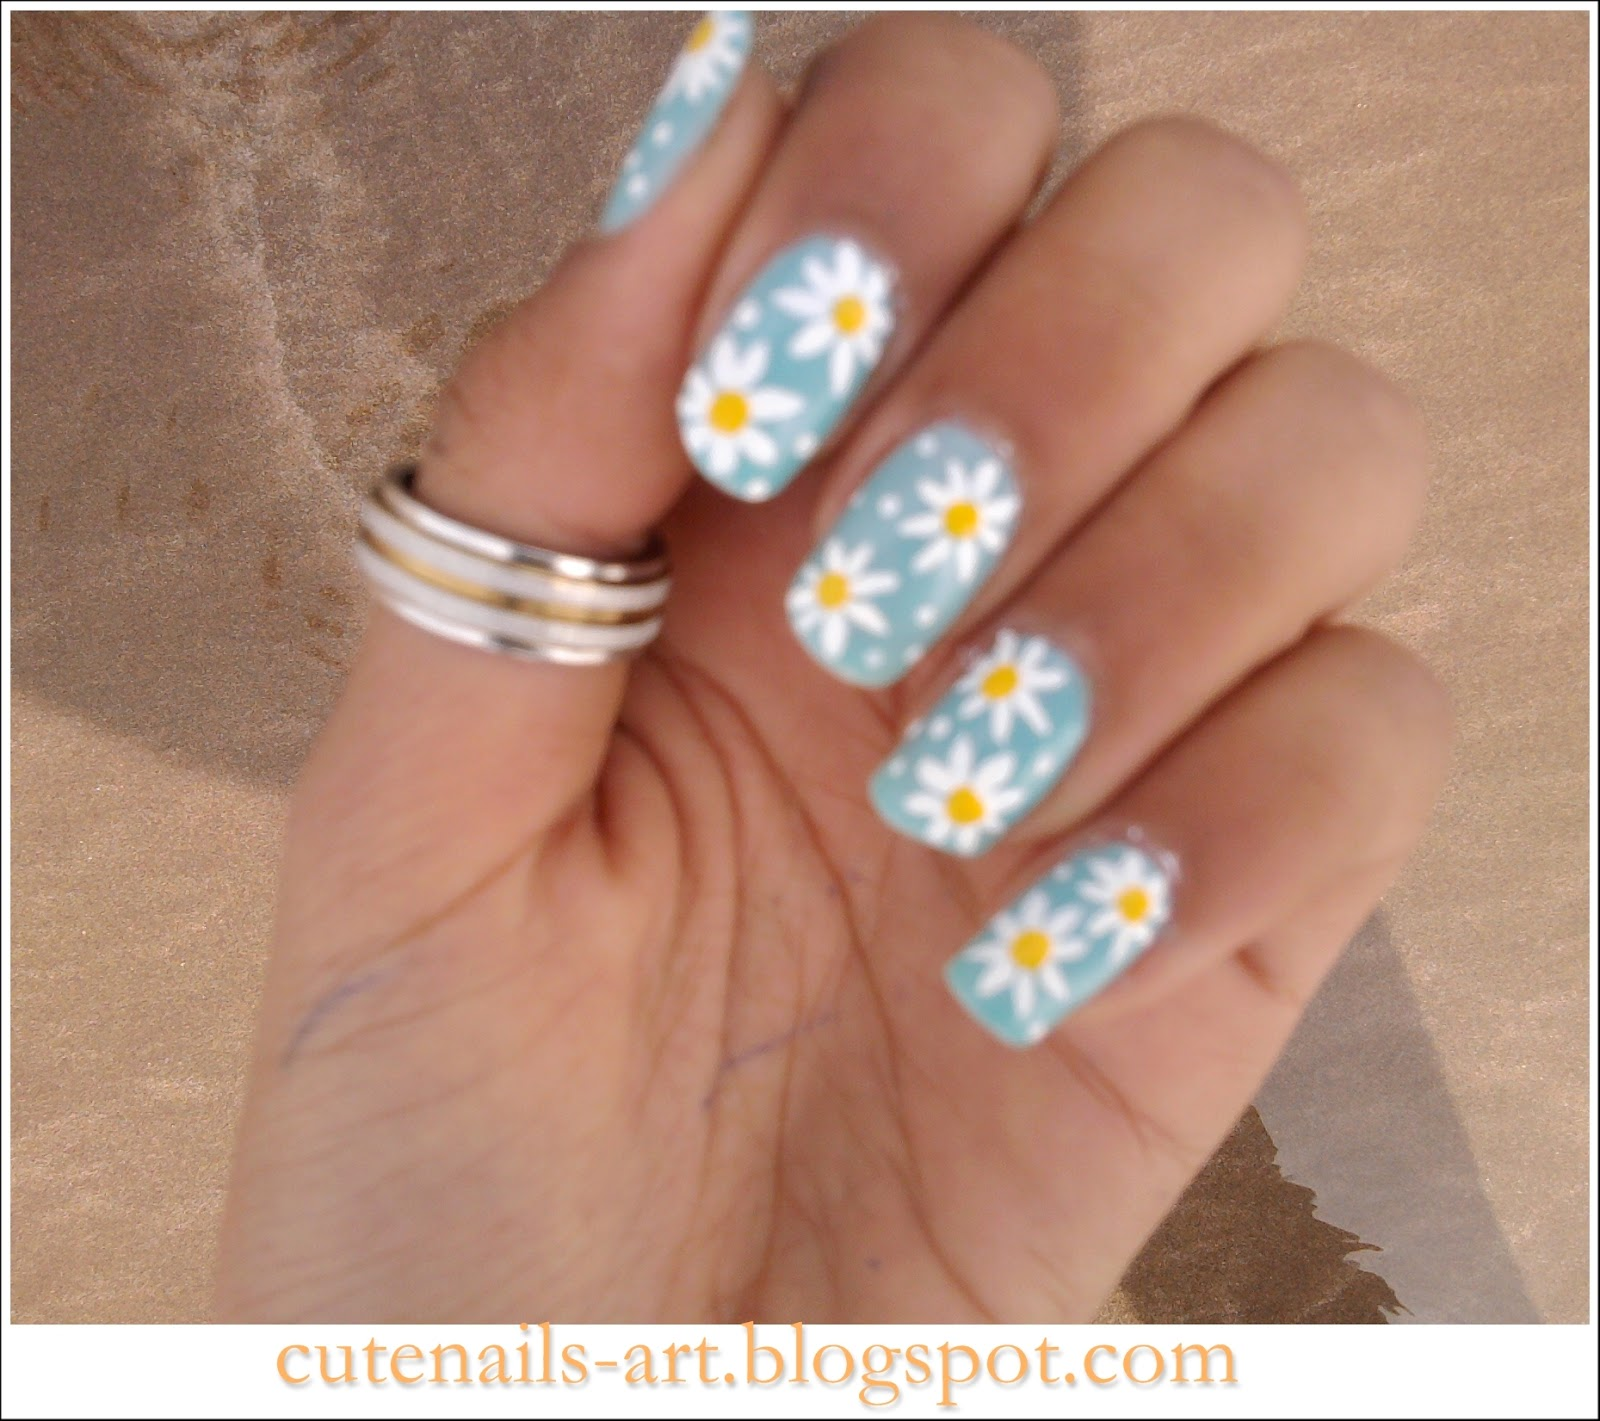 Cutenails art spring nails art daisy flowers for that nothing best to start the spring series of nail art whit a daisy flowers nail art prinsesfo Gallery